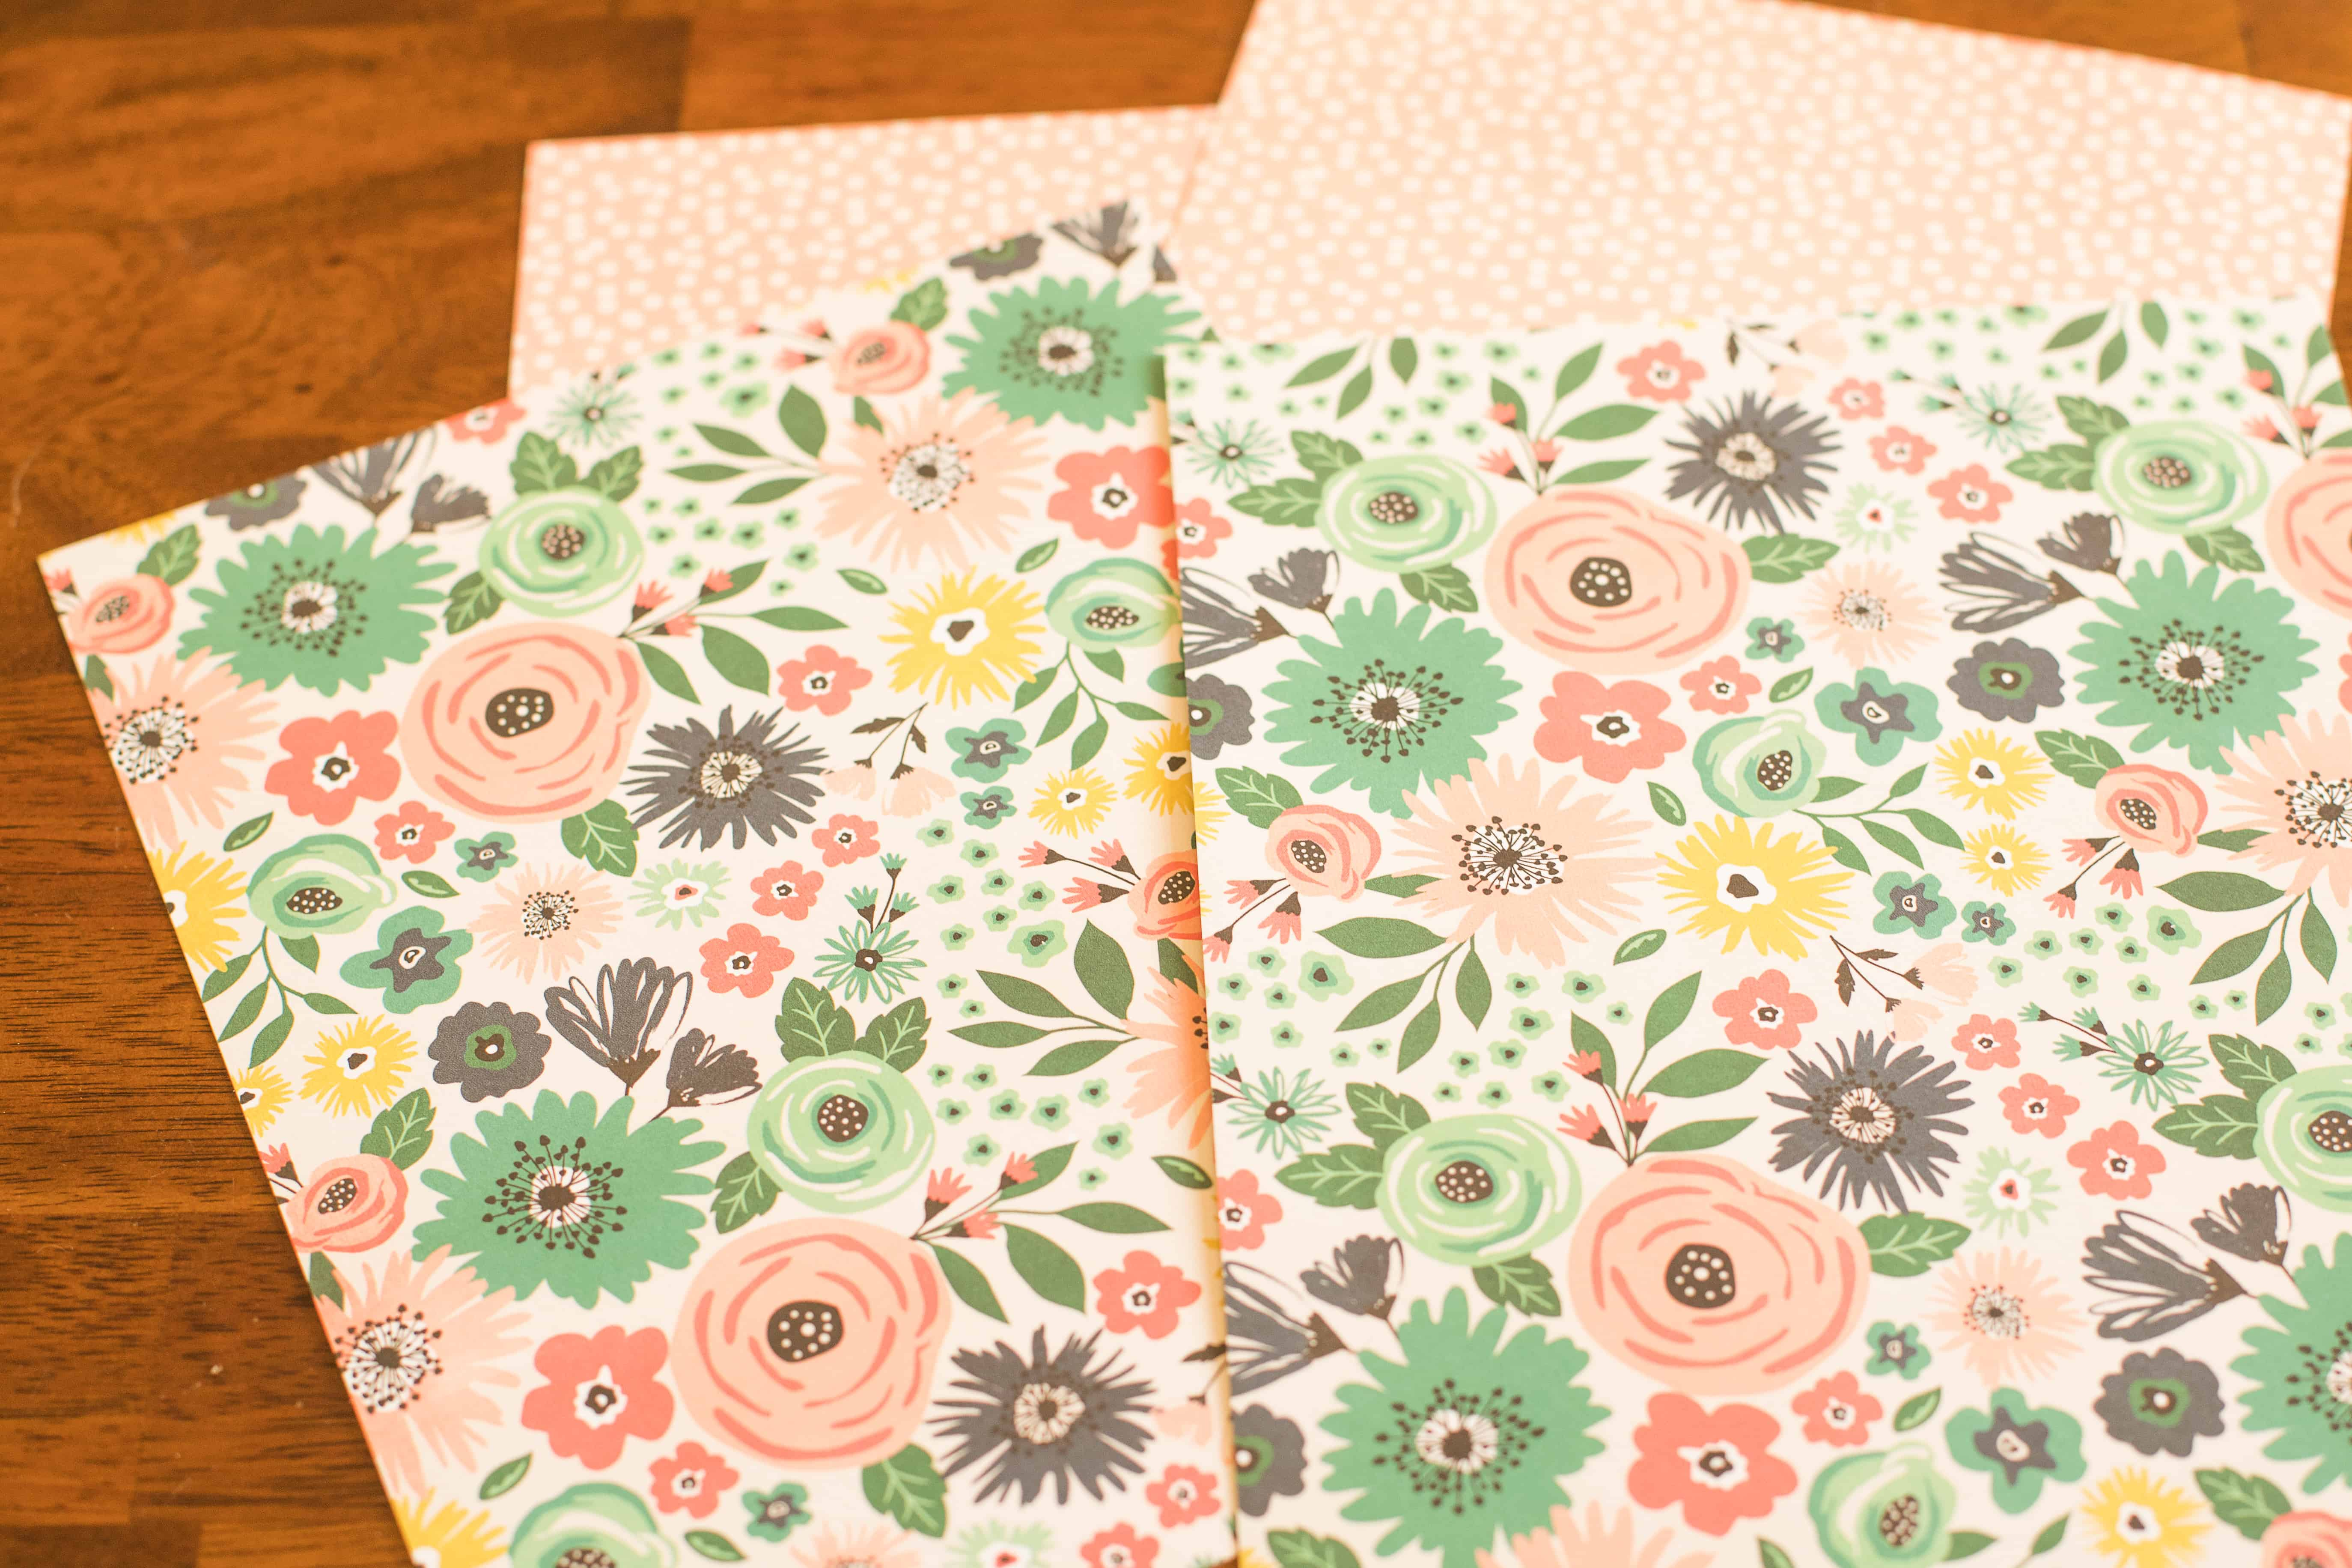 DIY Planner Accessories: 3 Projects You Can Make Today!